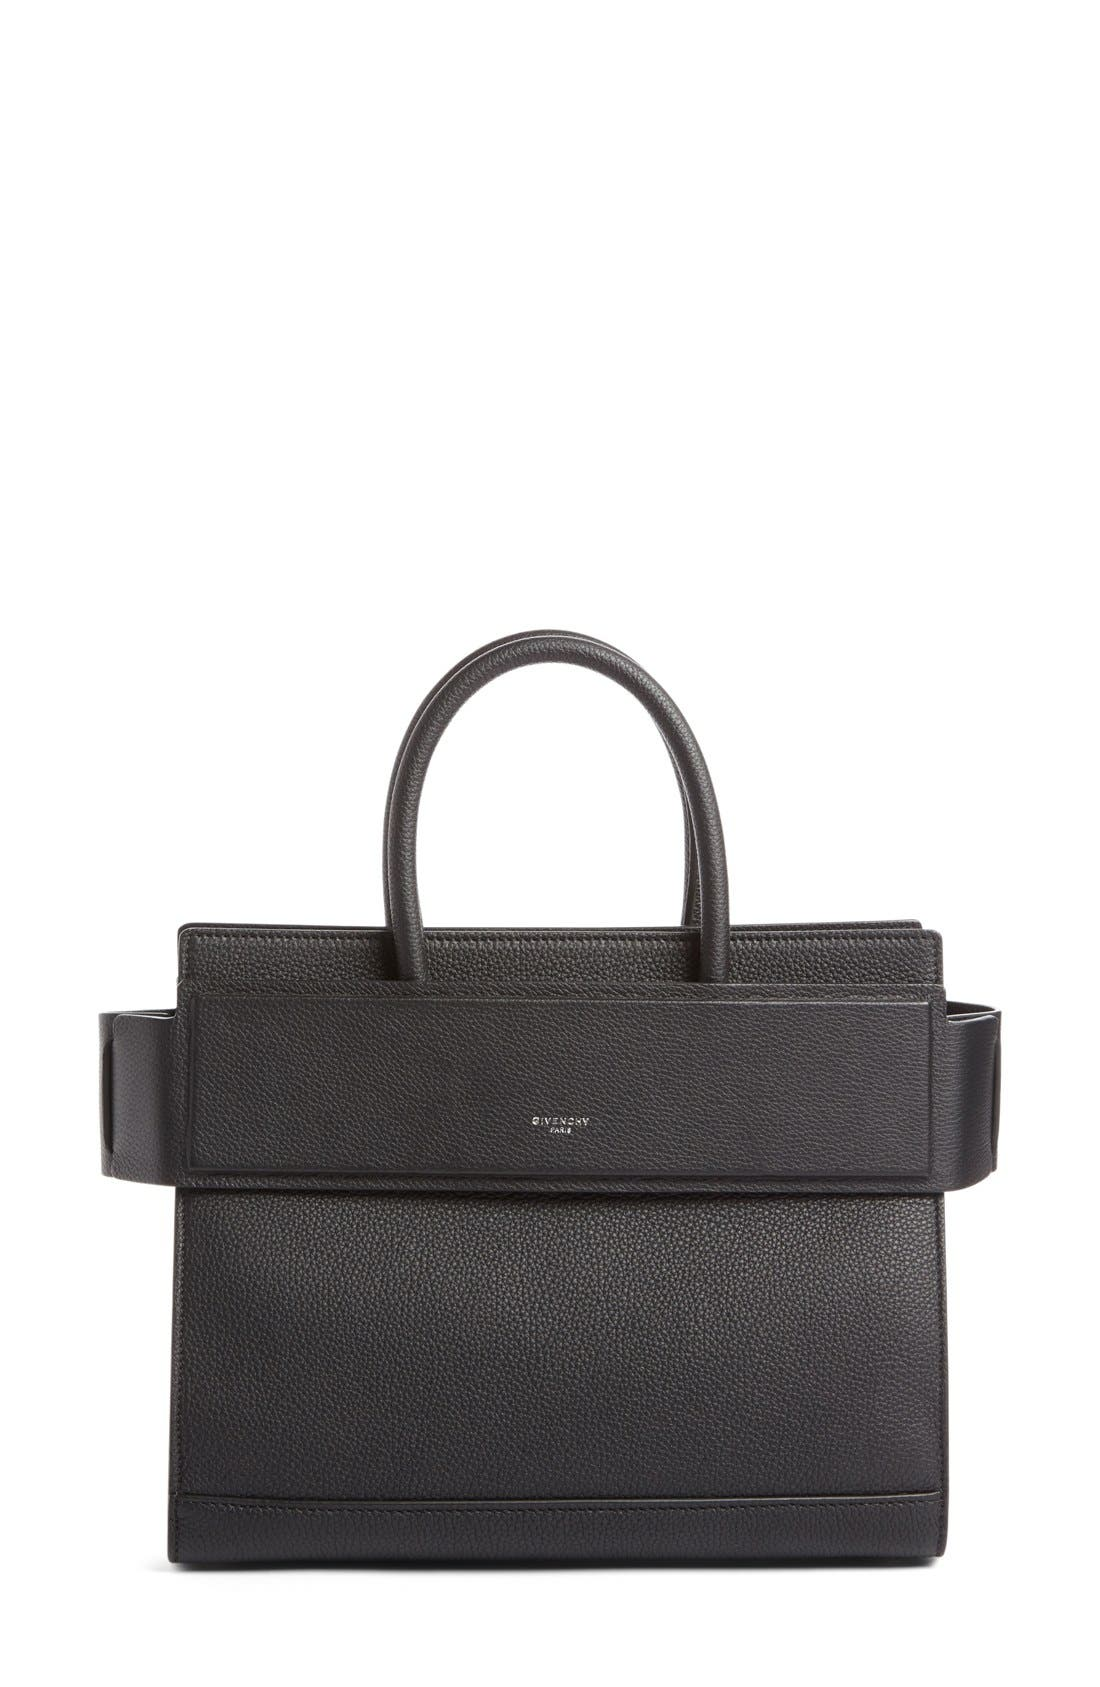 Alternate Image 1 Selected - Givenchy Small Horizon Grained Calfskin Leather Tote